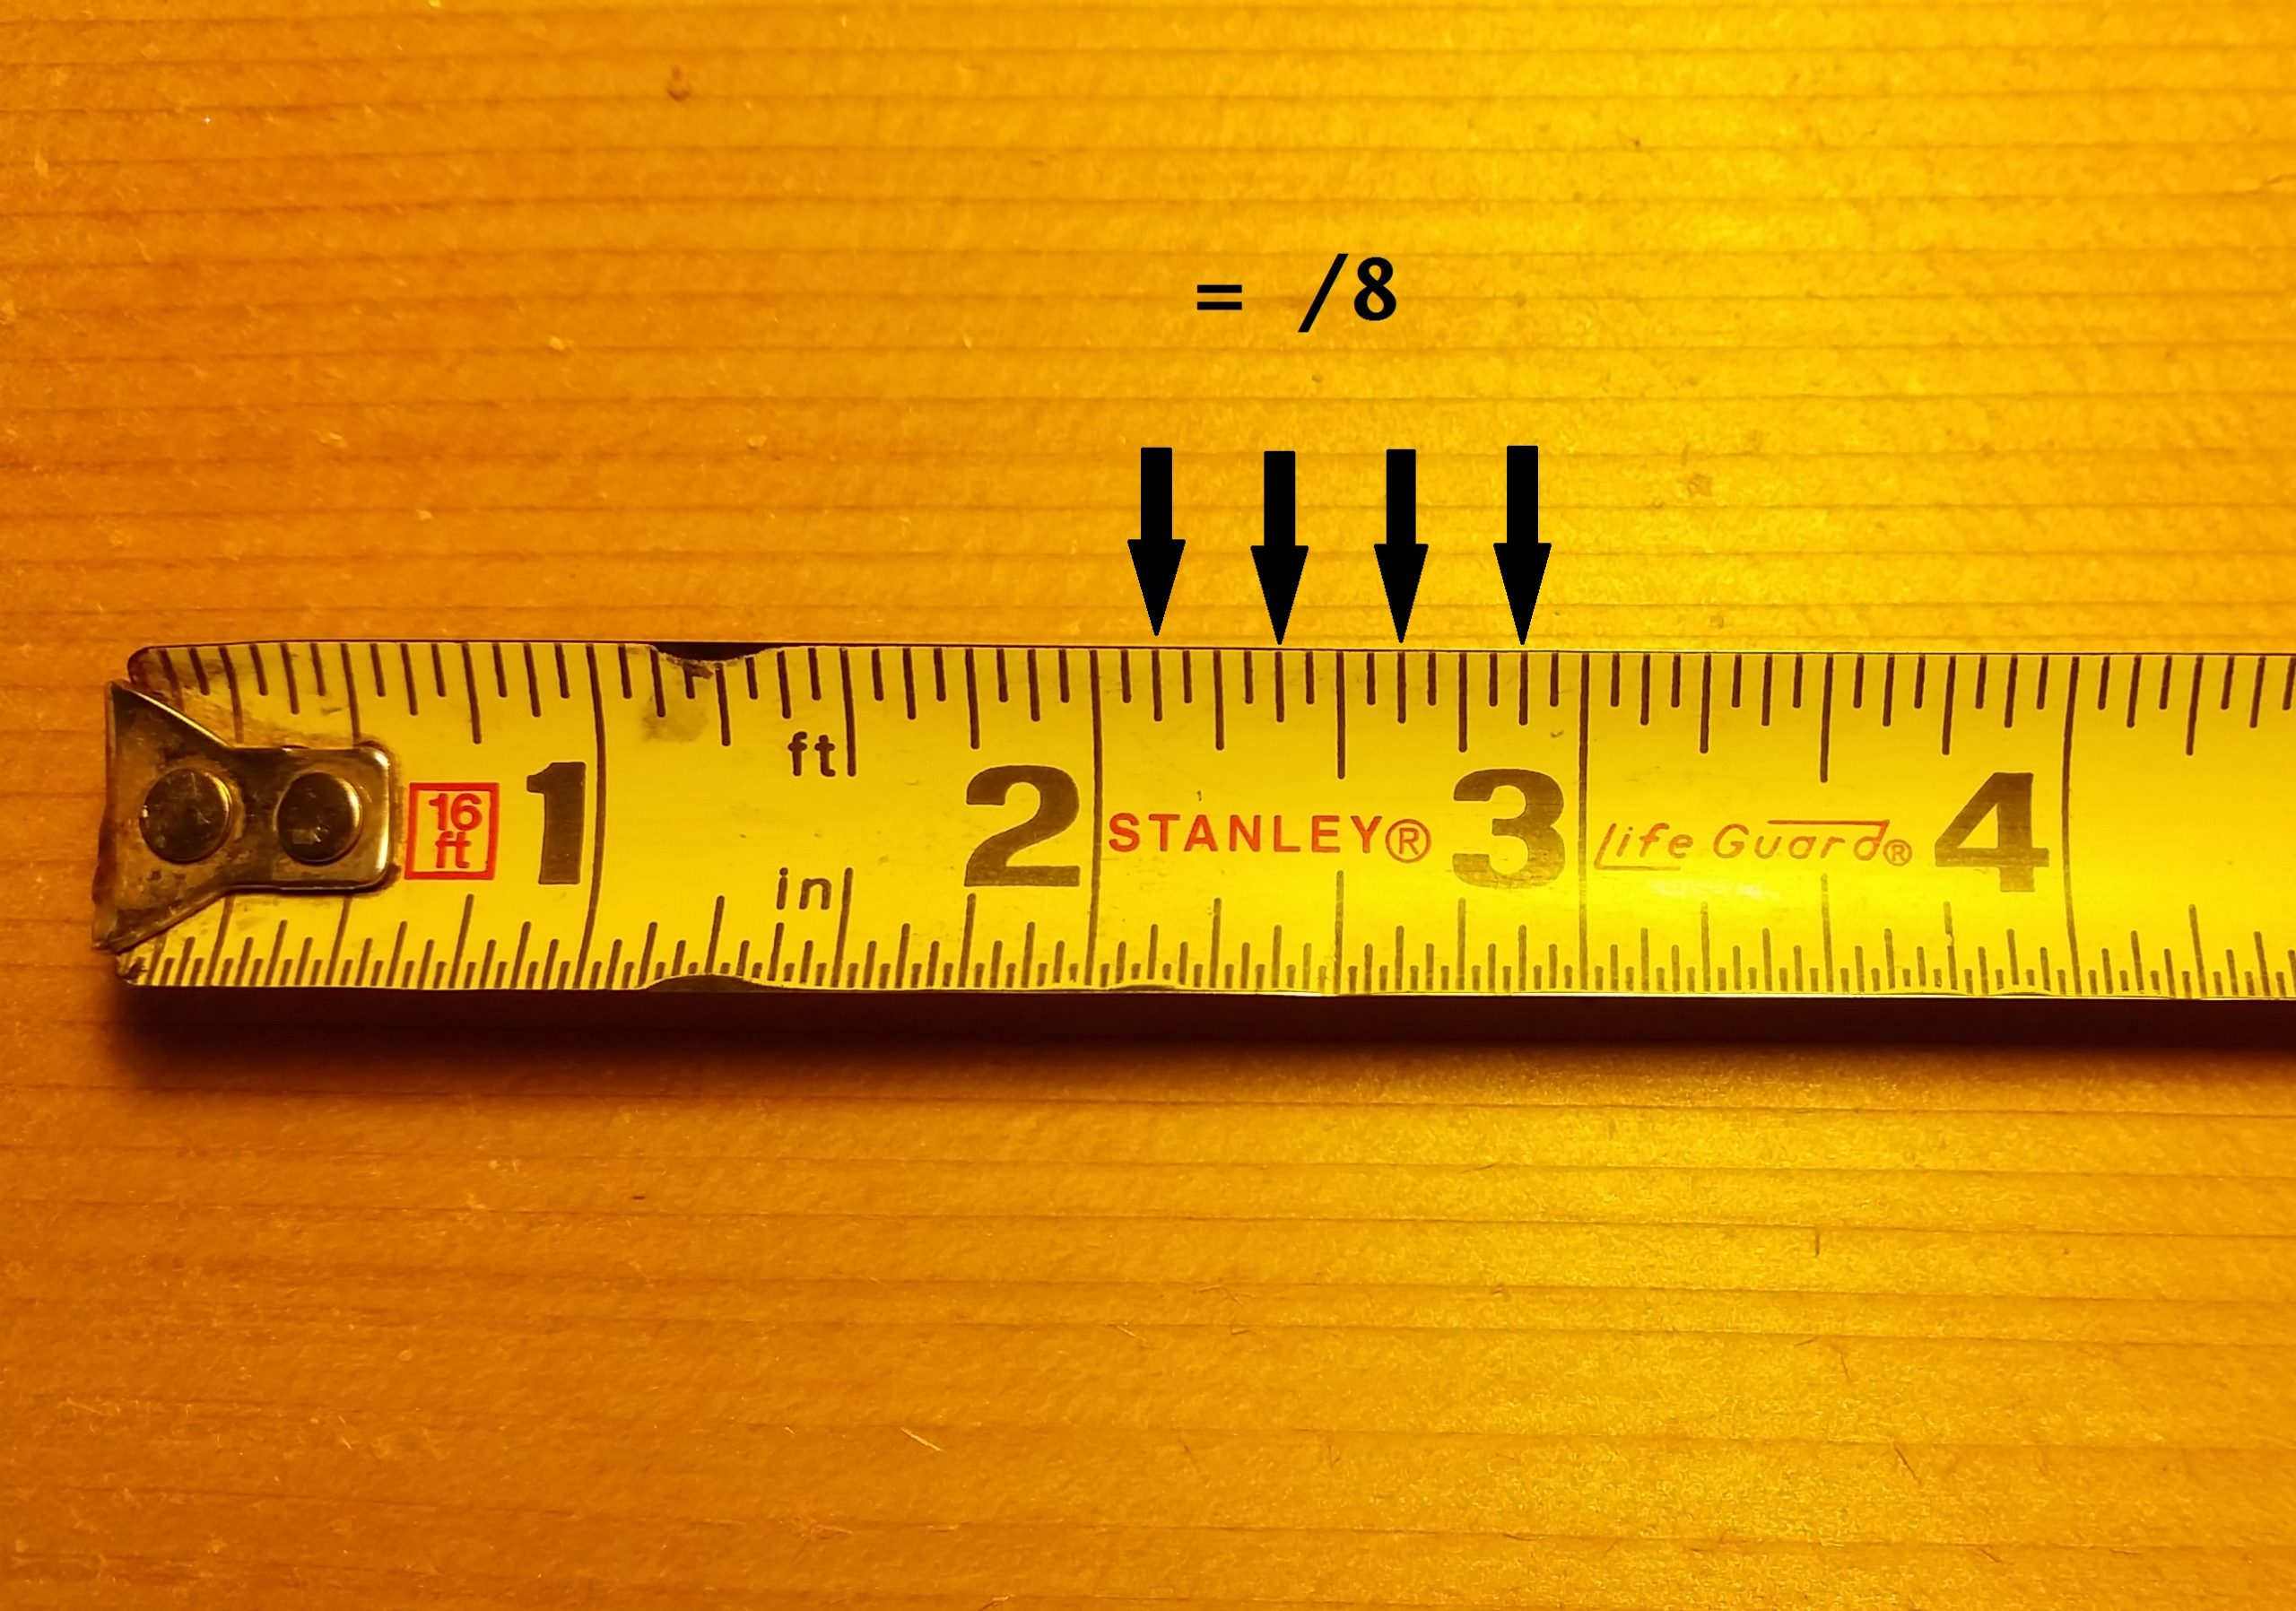 How To Read A Tape Measure (Step-By-Step Guide With Pictures)